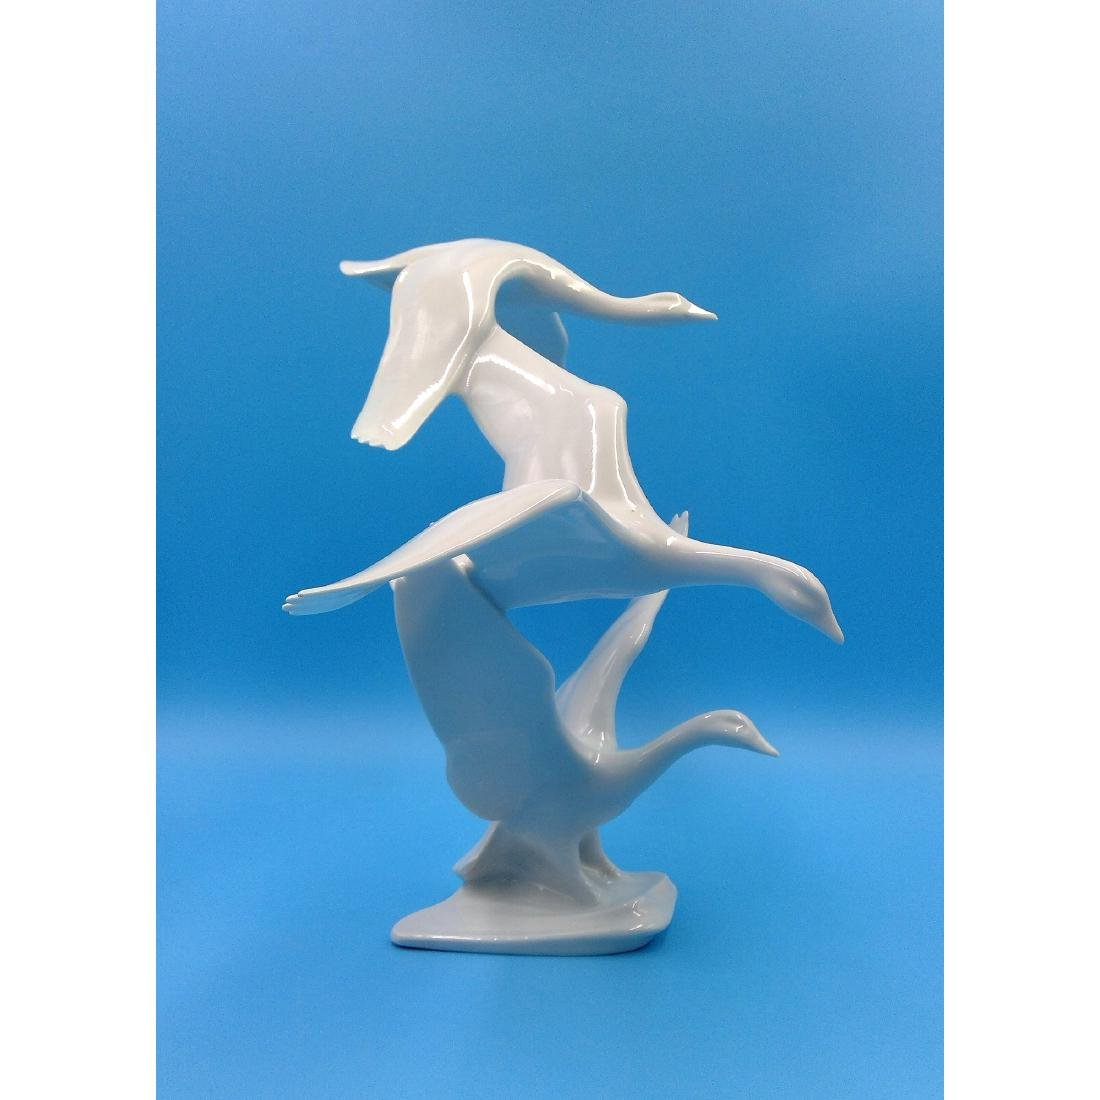 ALKA KUNST GERMAN PORCELAIN FLYING GEESE SCULPTURE - 3